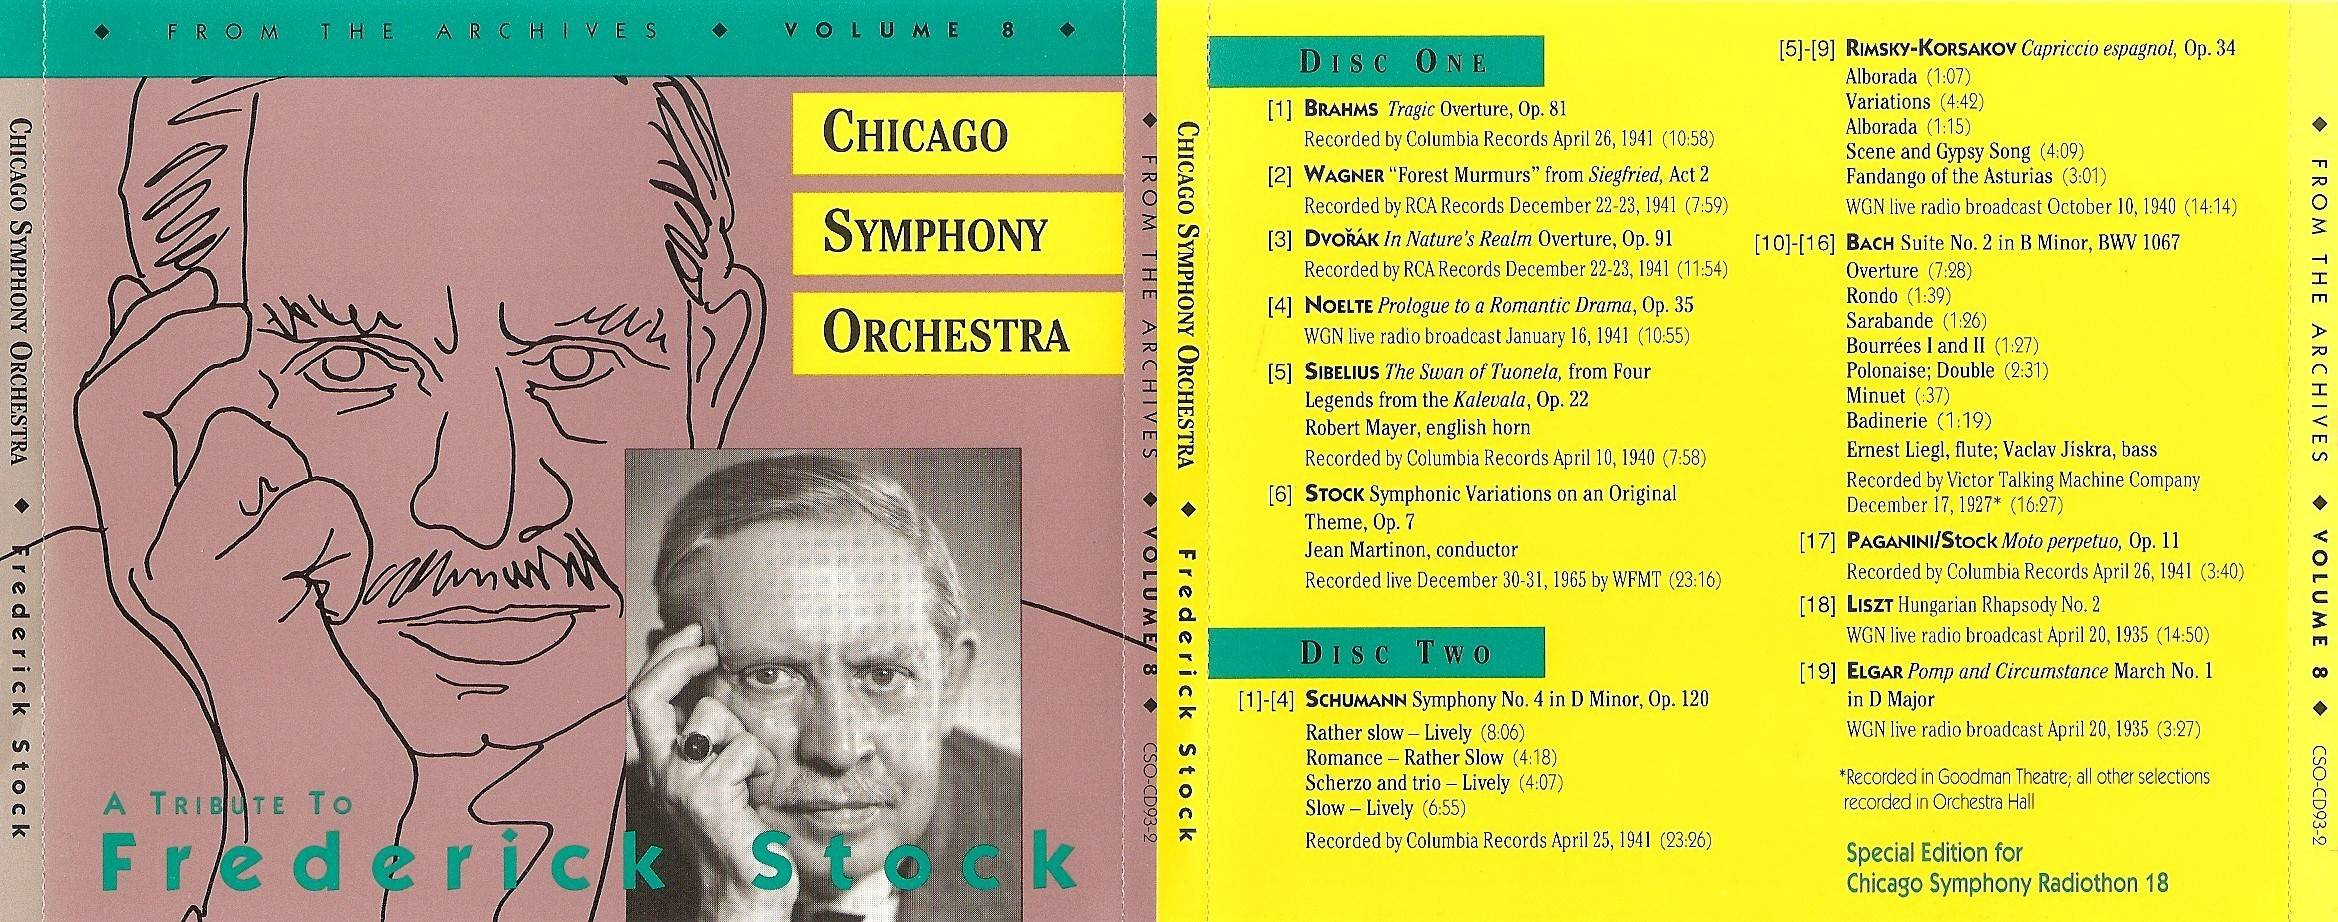 Chicago Symphony Orchestra - From The Archives, Vol.8: A Tribute to Frederick Stock, 2-CD set (1993)